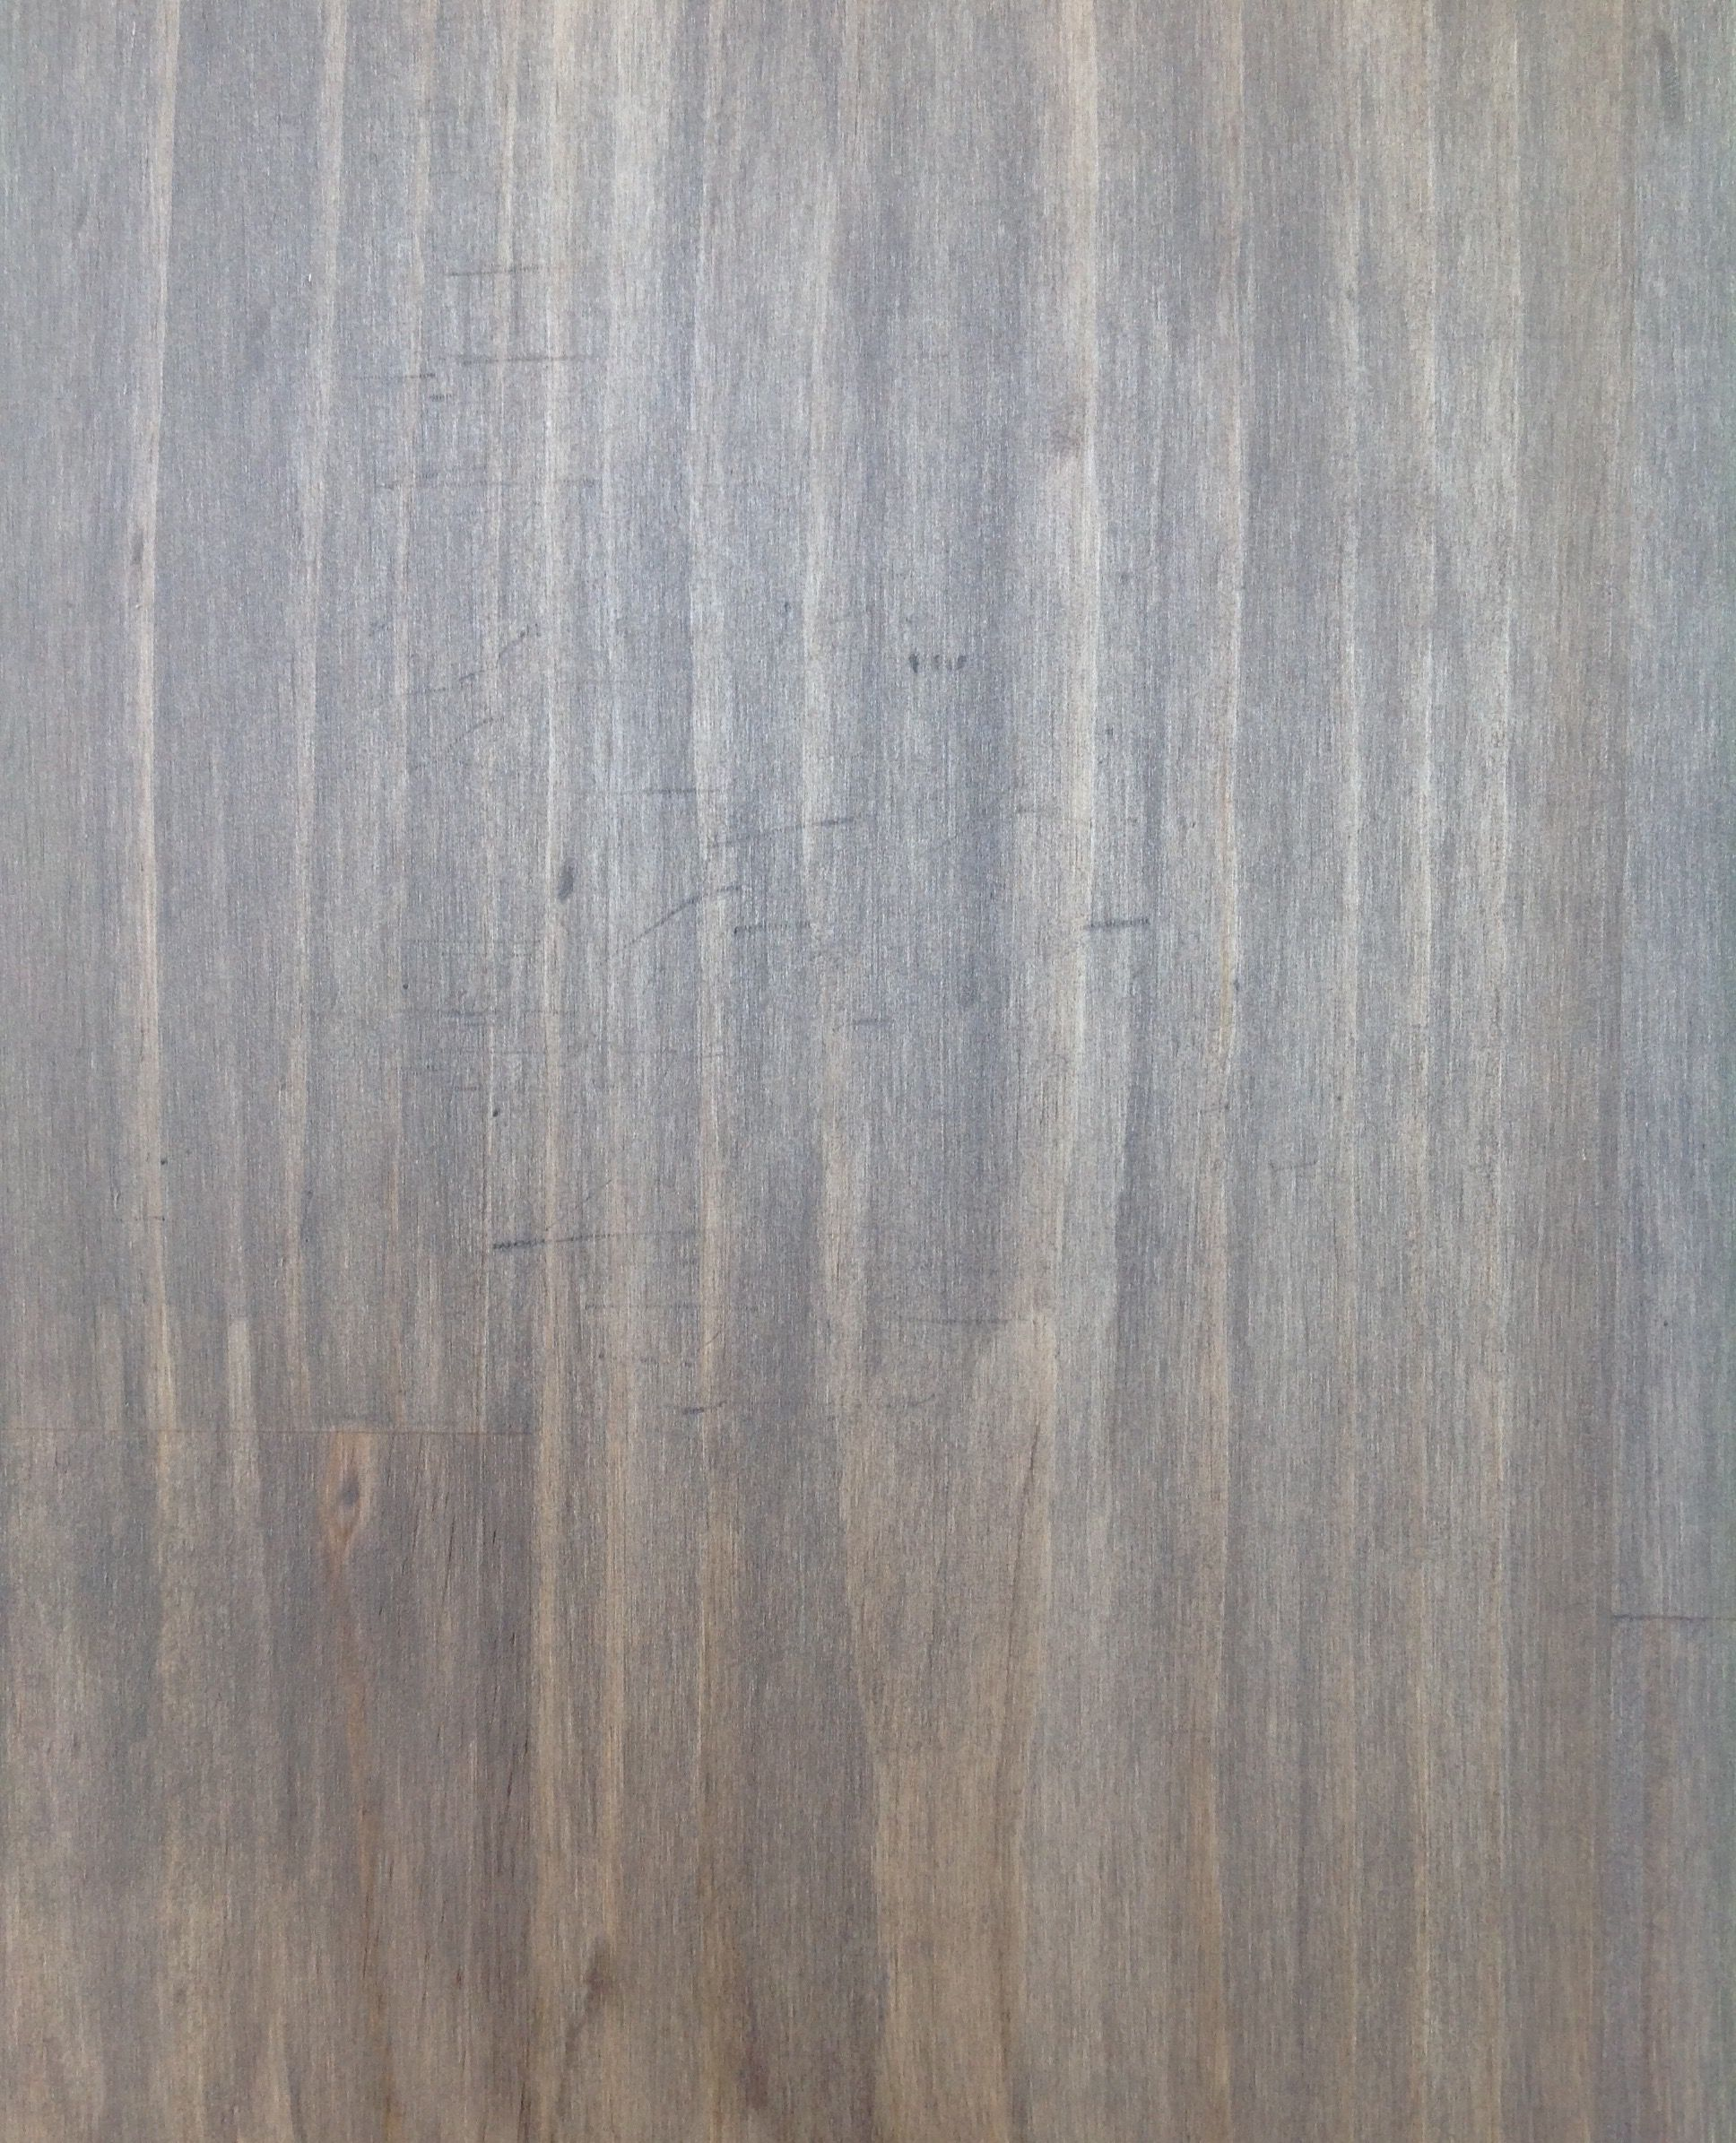 Marvelous Finally Found A Perfect Stain That Looks Like WEATHERED Wood / Timber.  Cabots Australia Interior